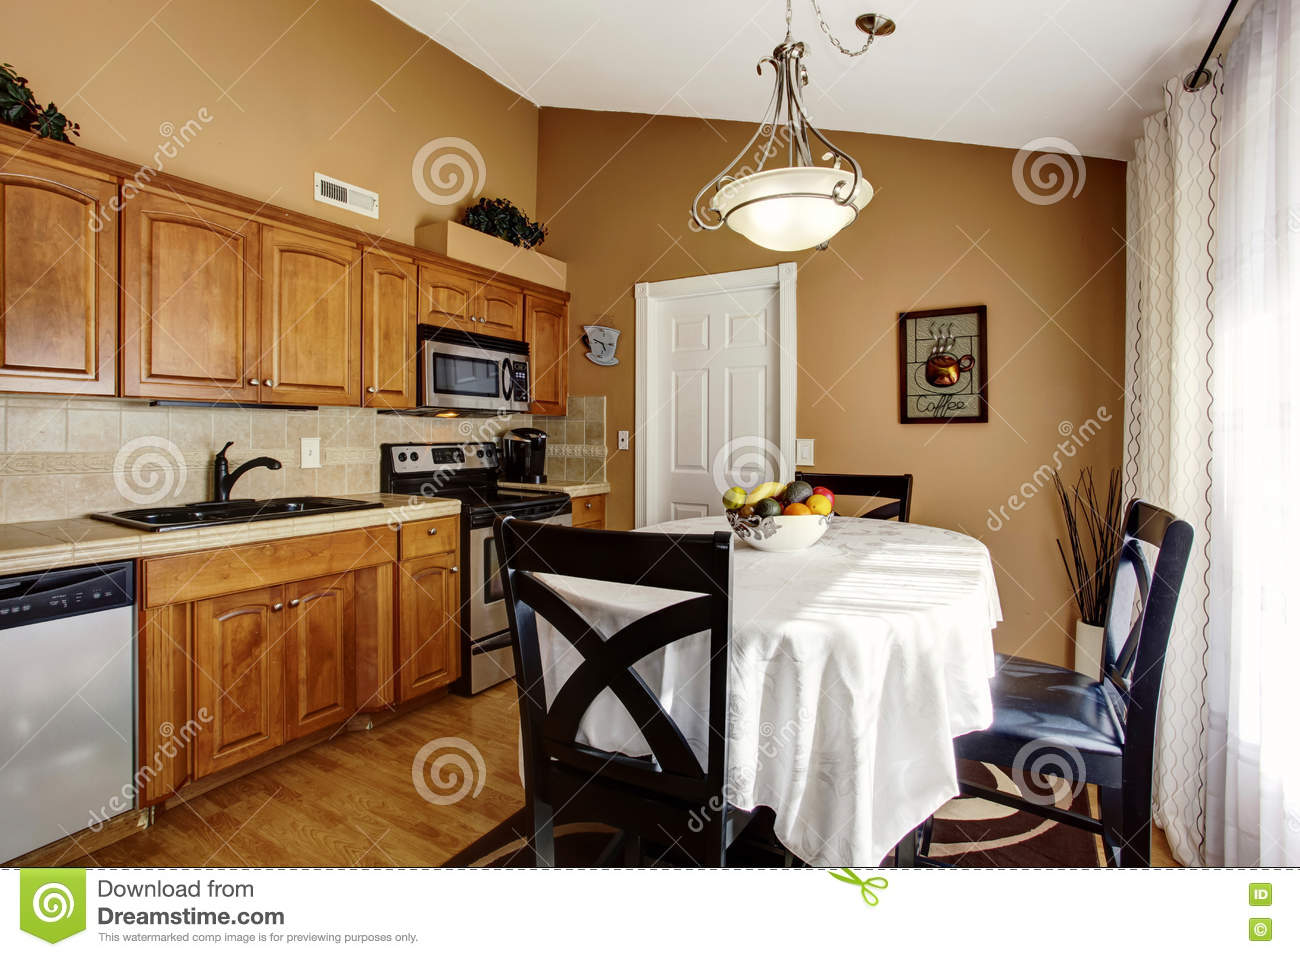 Cozy Kitchen And Dining Room Interior With Black Table Set Brown Cabinets